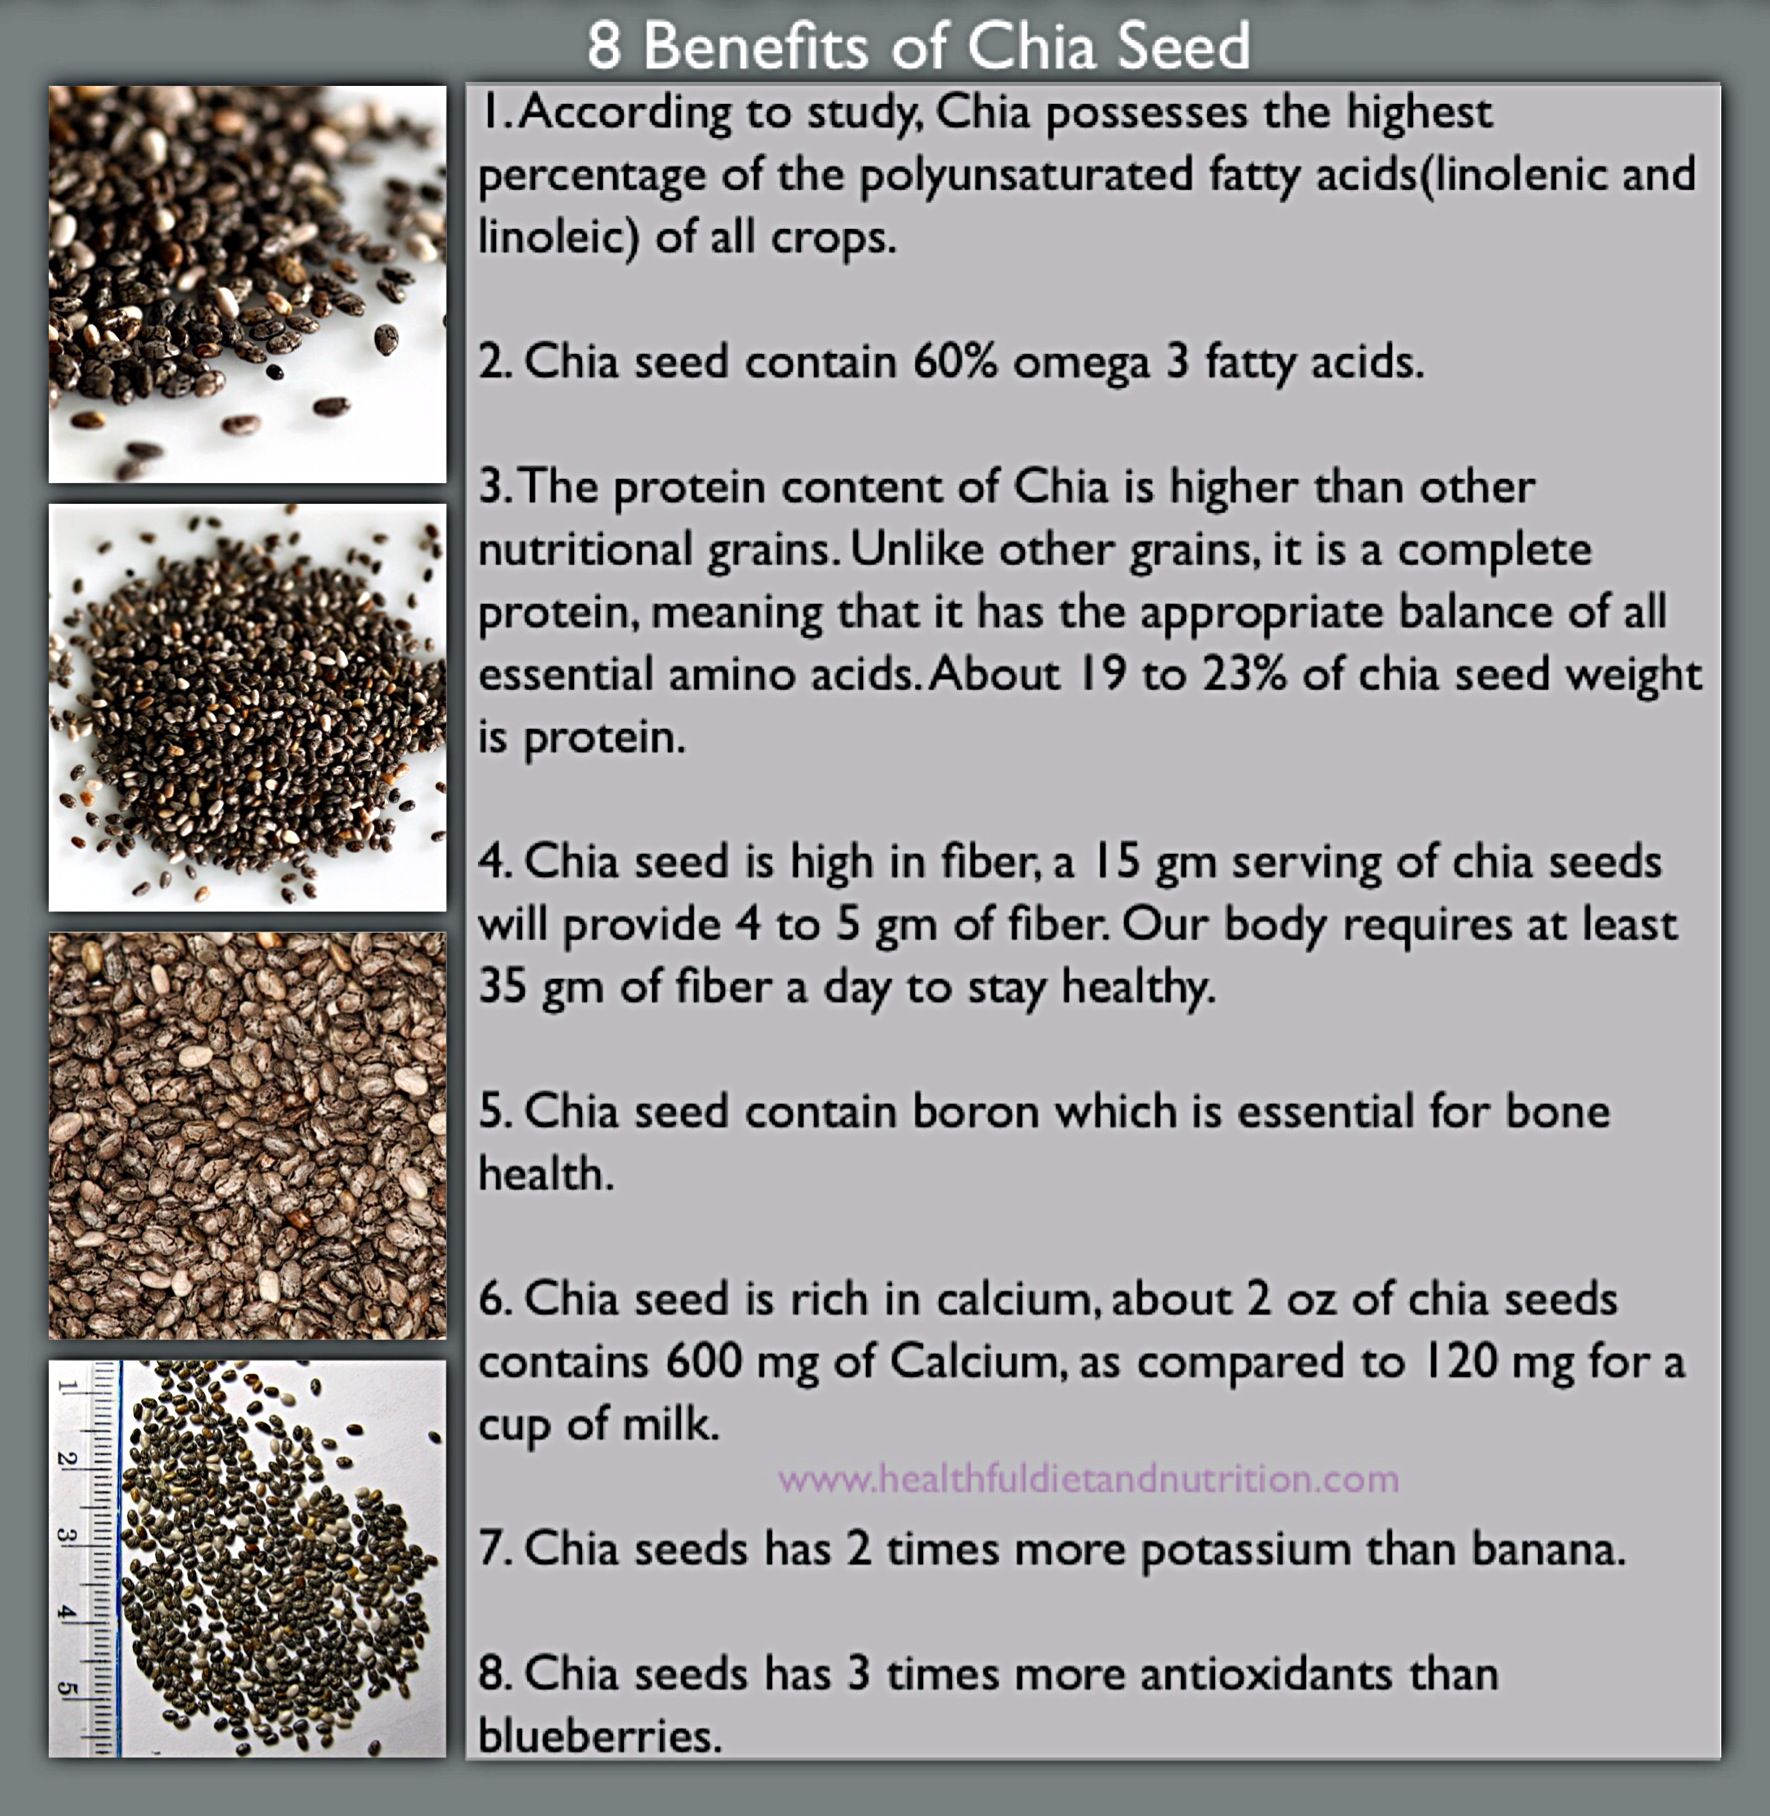 8 Health Benefits of Chia Seed